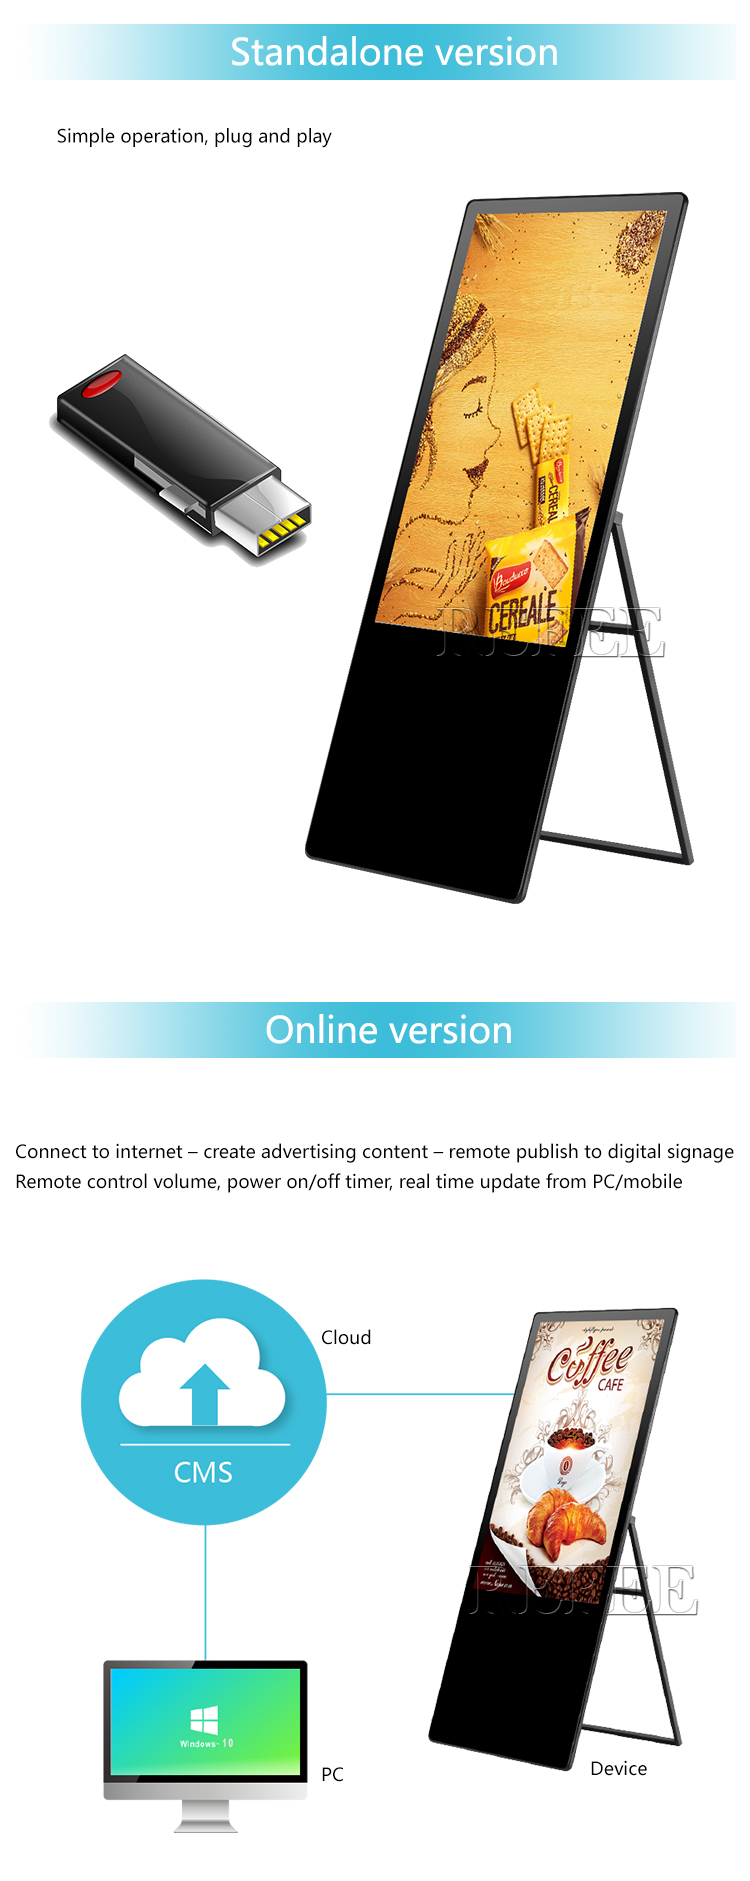 43 inch movable/portable/foldable Android digital signage advertising kiosk